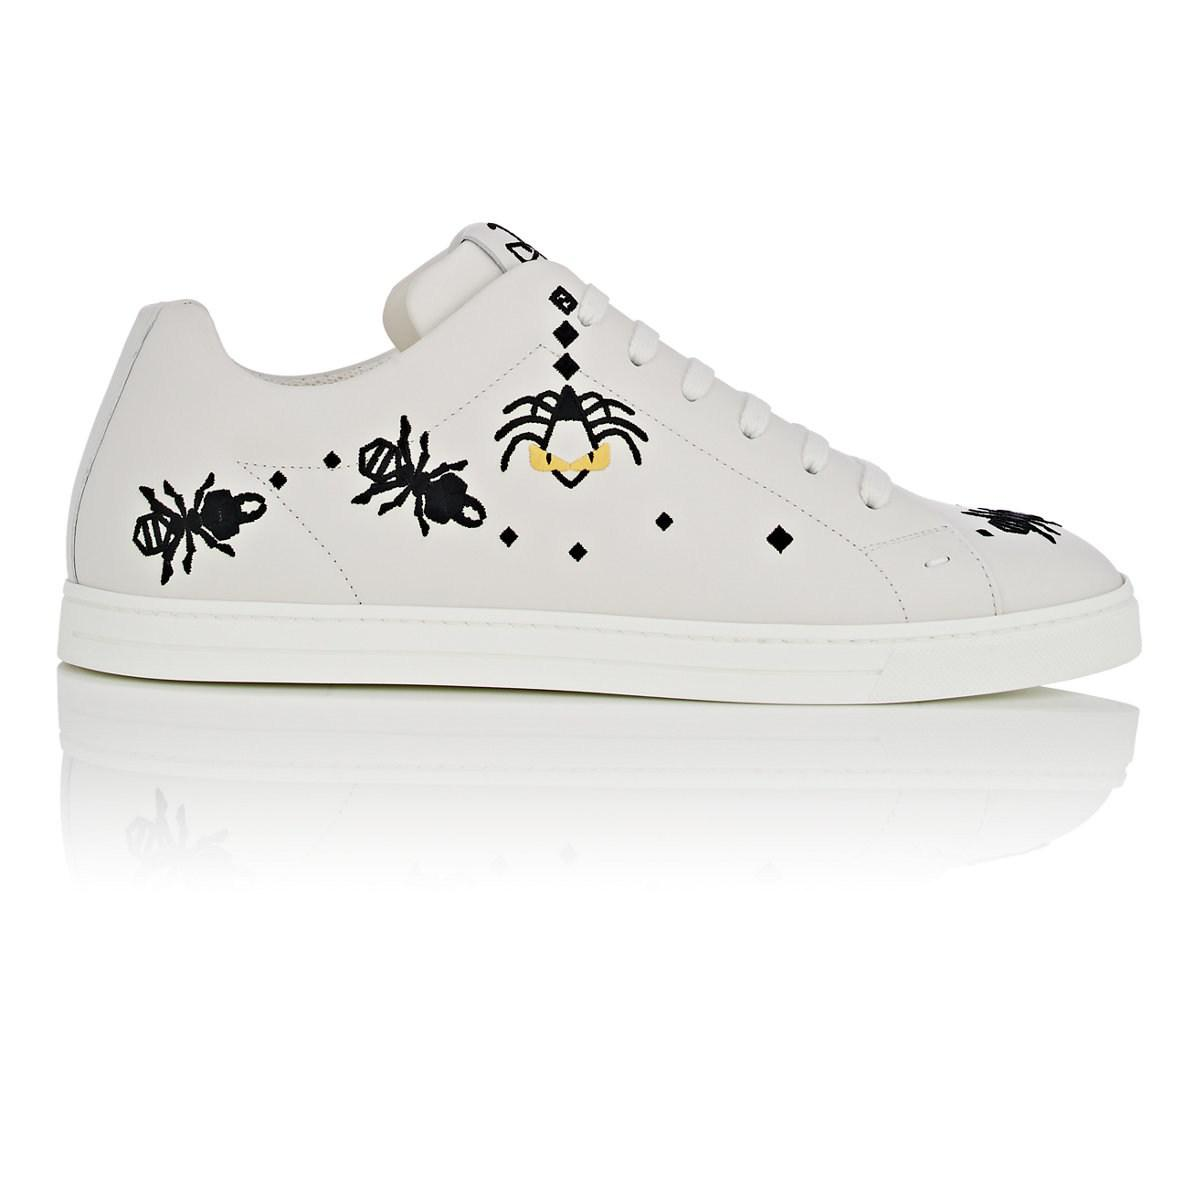 Mens Super Bugs Embroidered Leather Sneakers Fendi